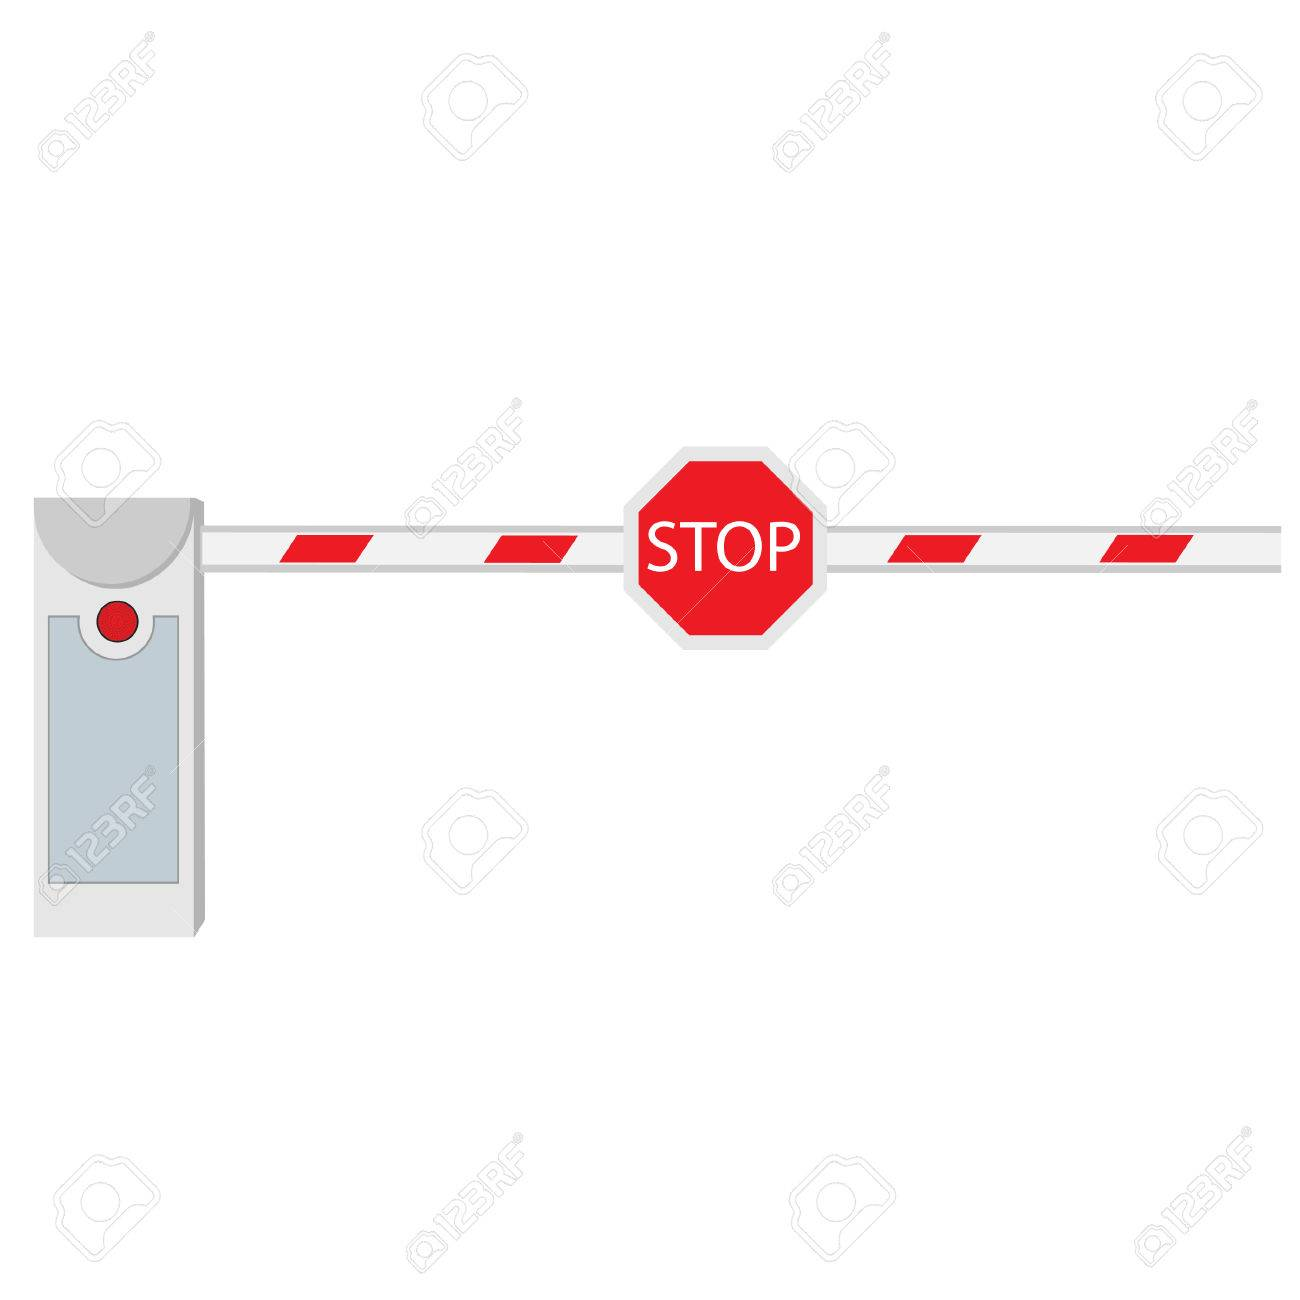 Schranke Clipart Closed Barrier Road Barrier Barrier Raster Isolated On White